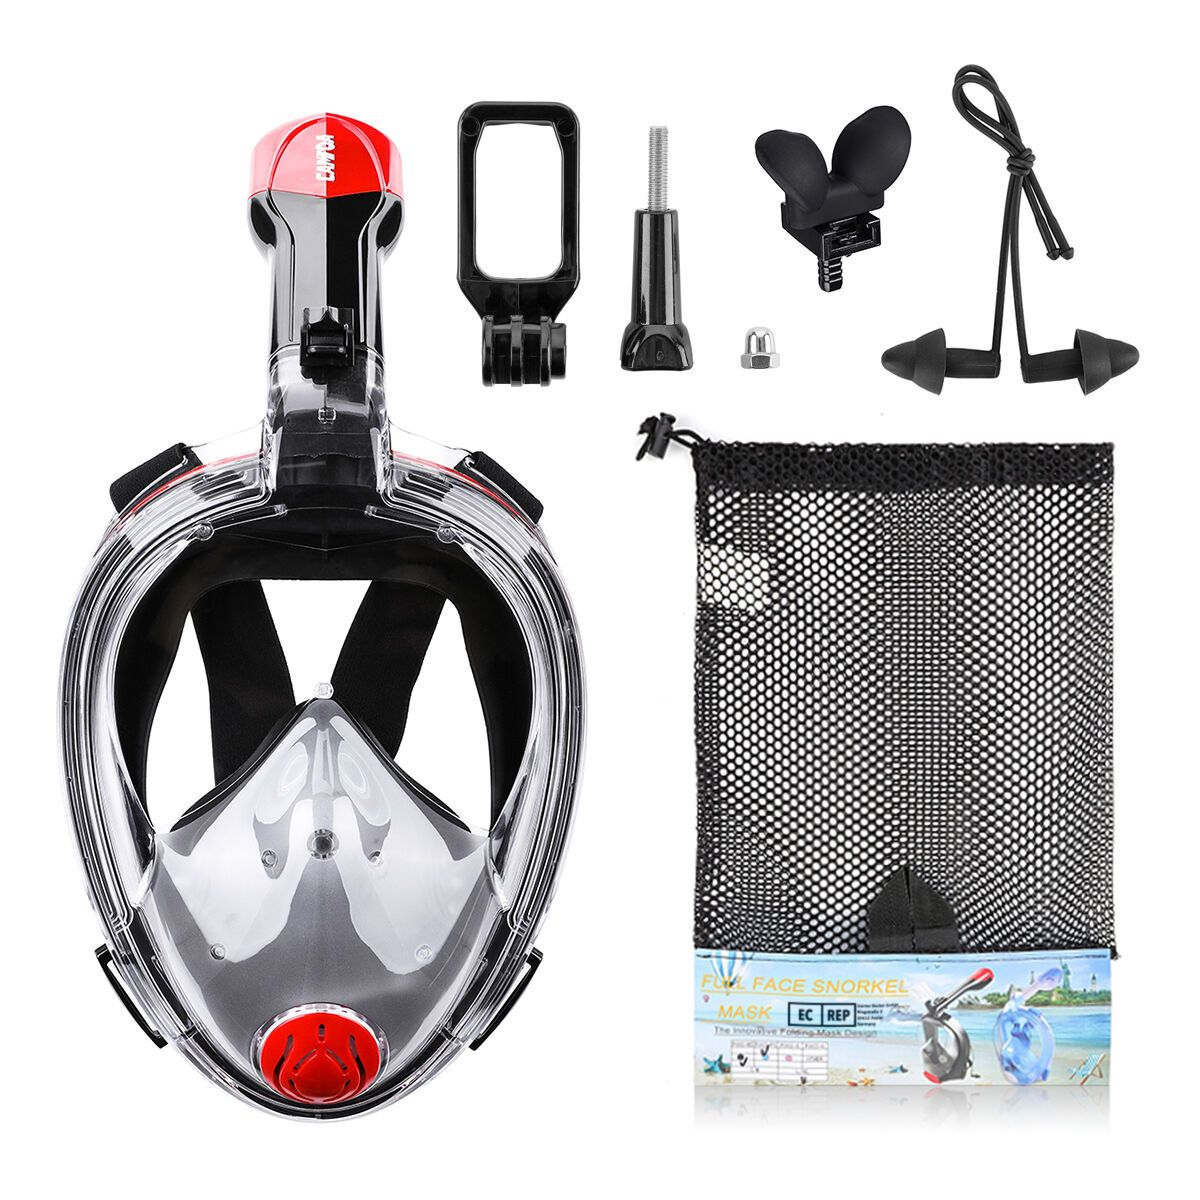 CAMTOA Foldable 180° Full Face Snorkeling Mask Anti fog Diving Respirator Mask with Detachable Camera Stand Net Bag